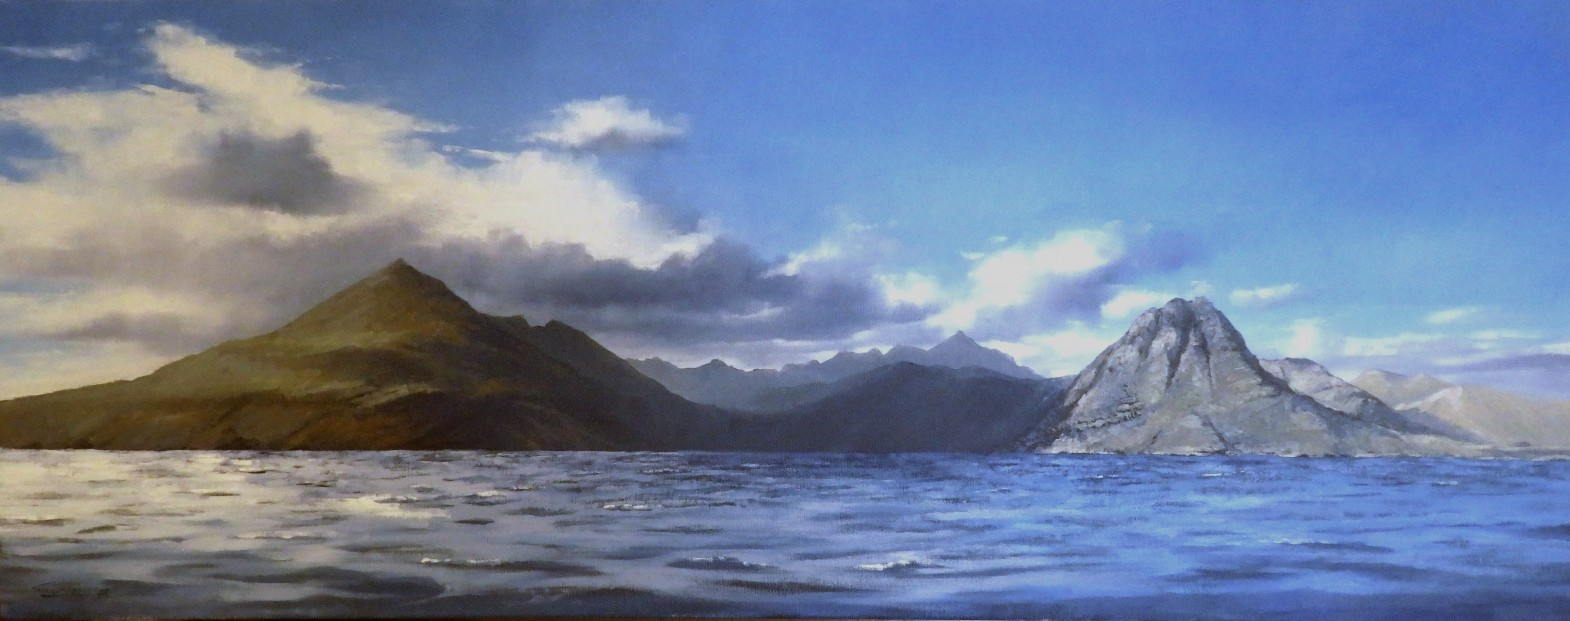 George-Noakes_Original_Oil_Dark-Heart-of-the-Cuillins_image-15.5x39.5_Framed-24.5x47.5